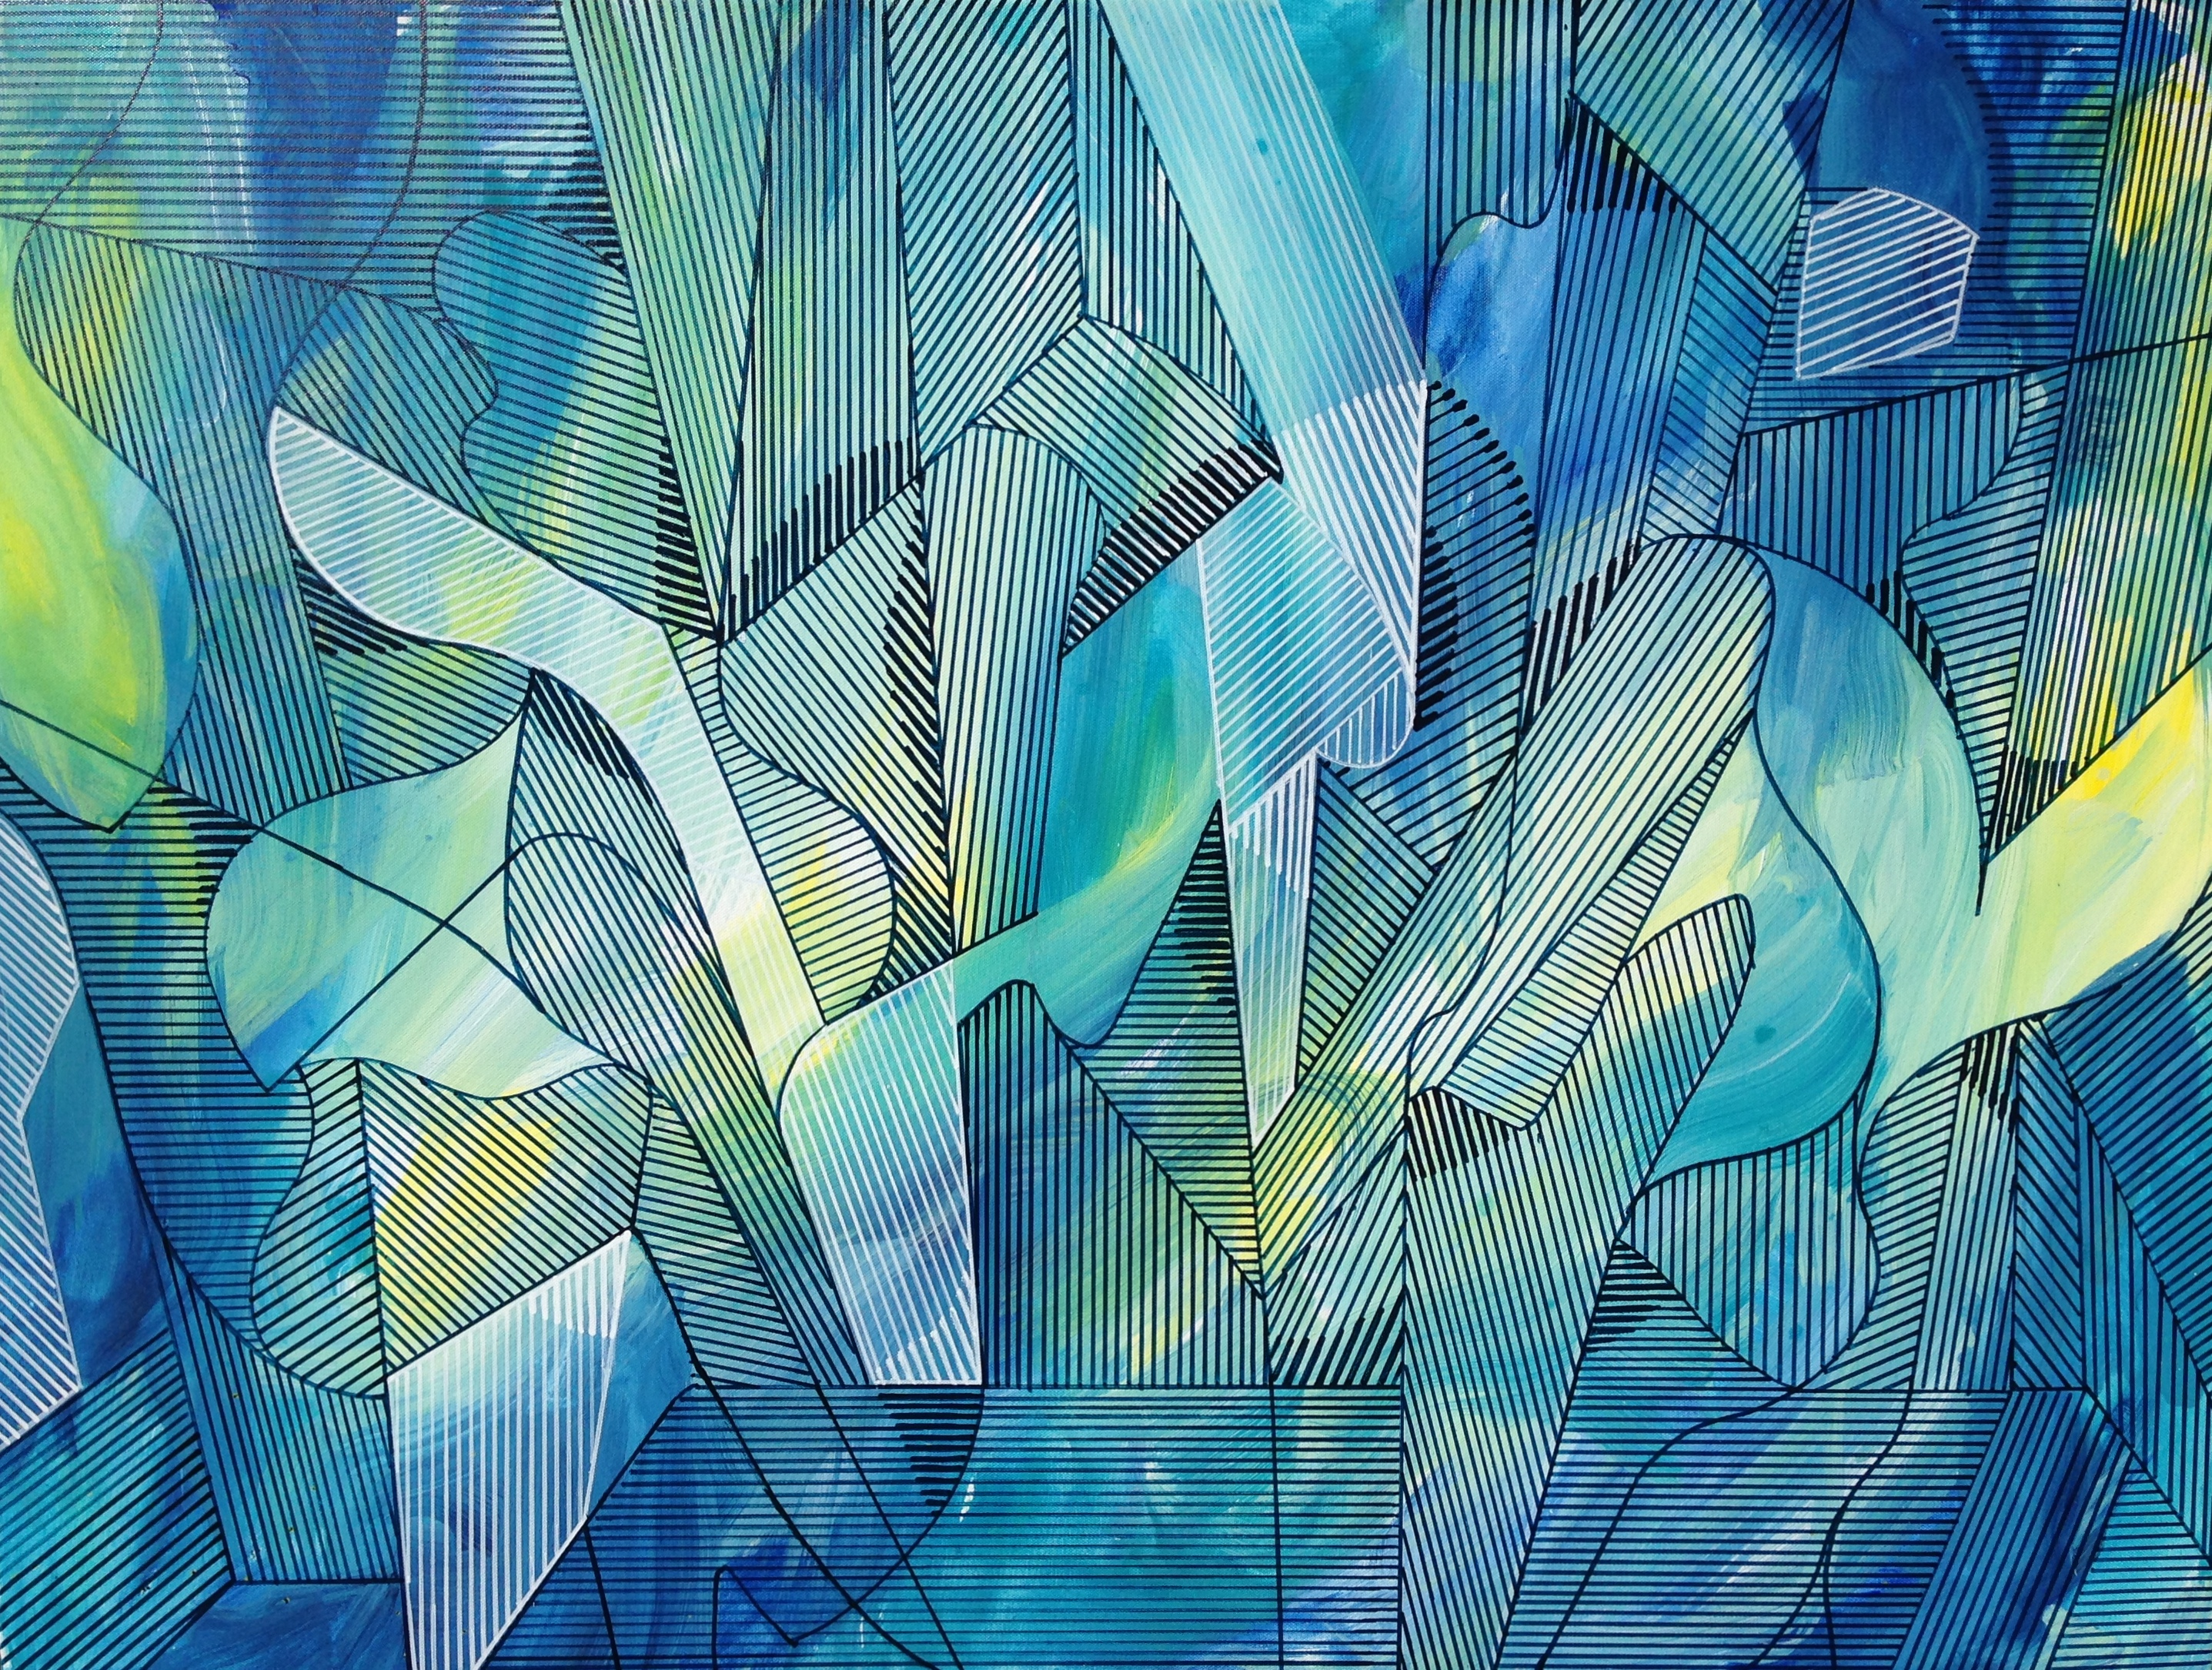 Geometric abstract painting.